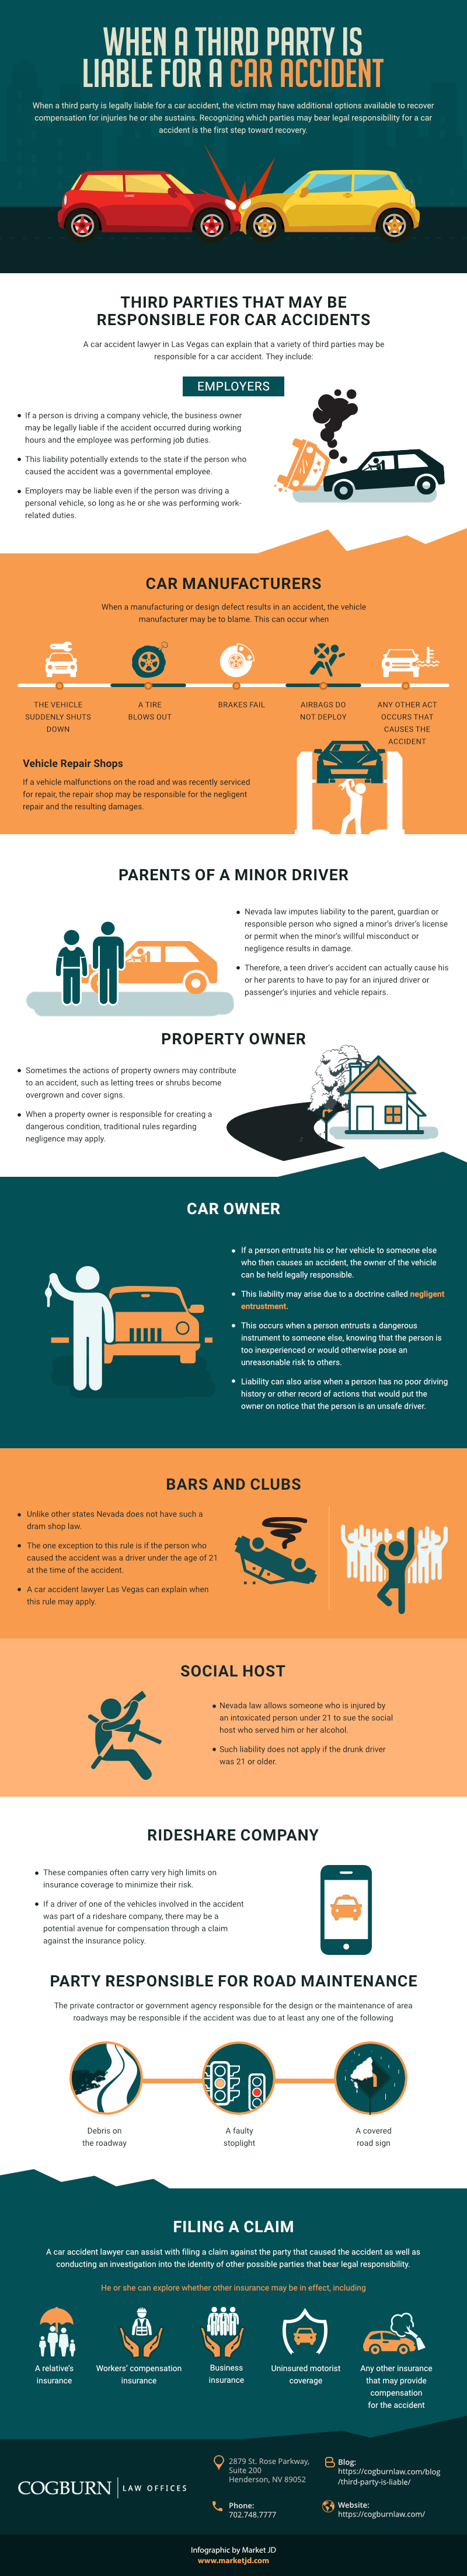 infographic_Third Party Car Accident Liability_car accident lawyer las vegas